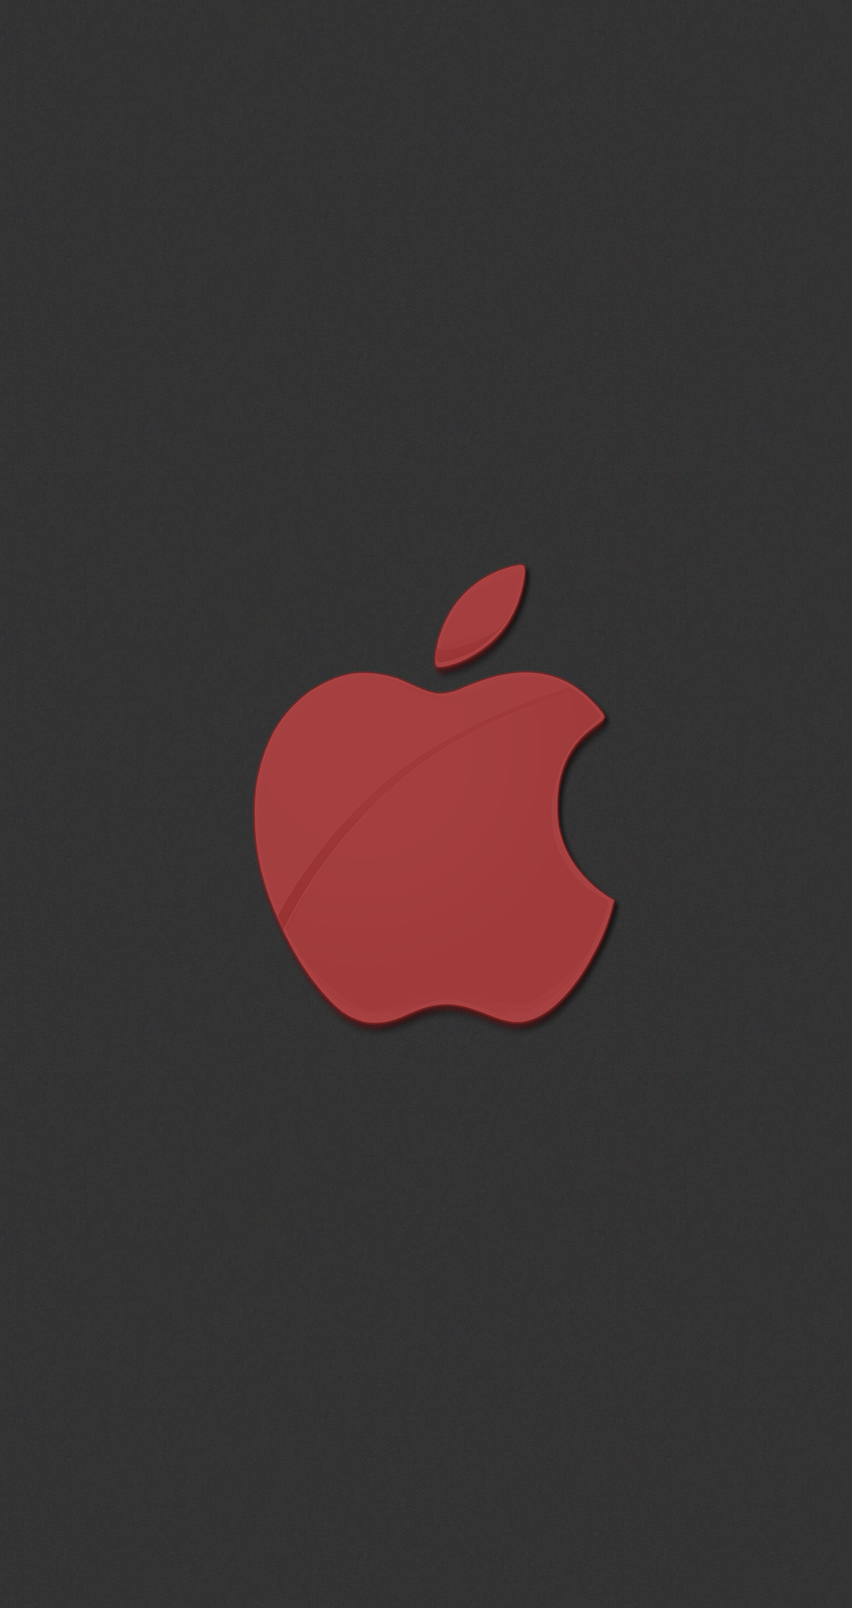 Iphone 6 Quote Wallpapers 35 Cool And Awesome Iphone 6 Wallpapers In Hd Quality